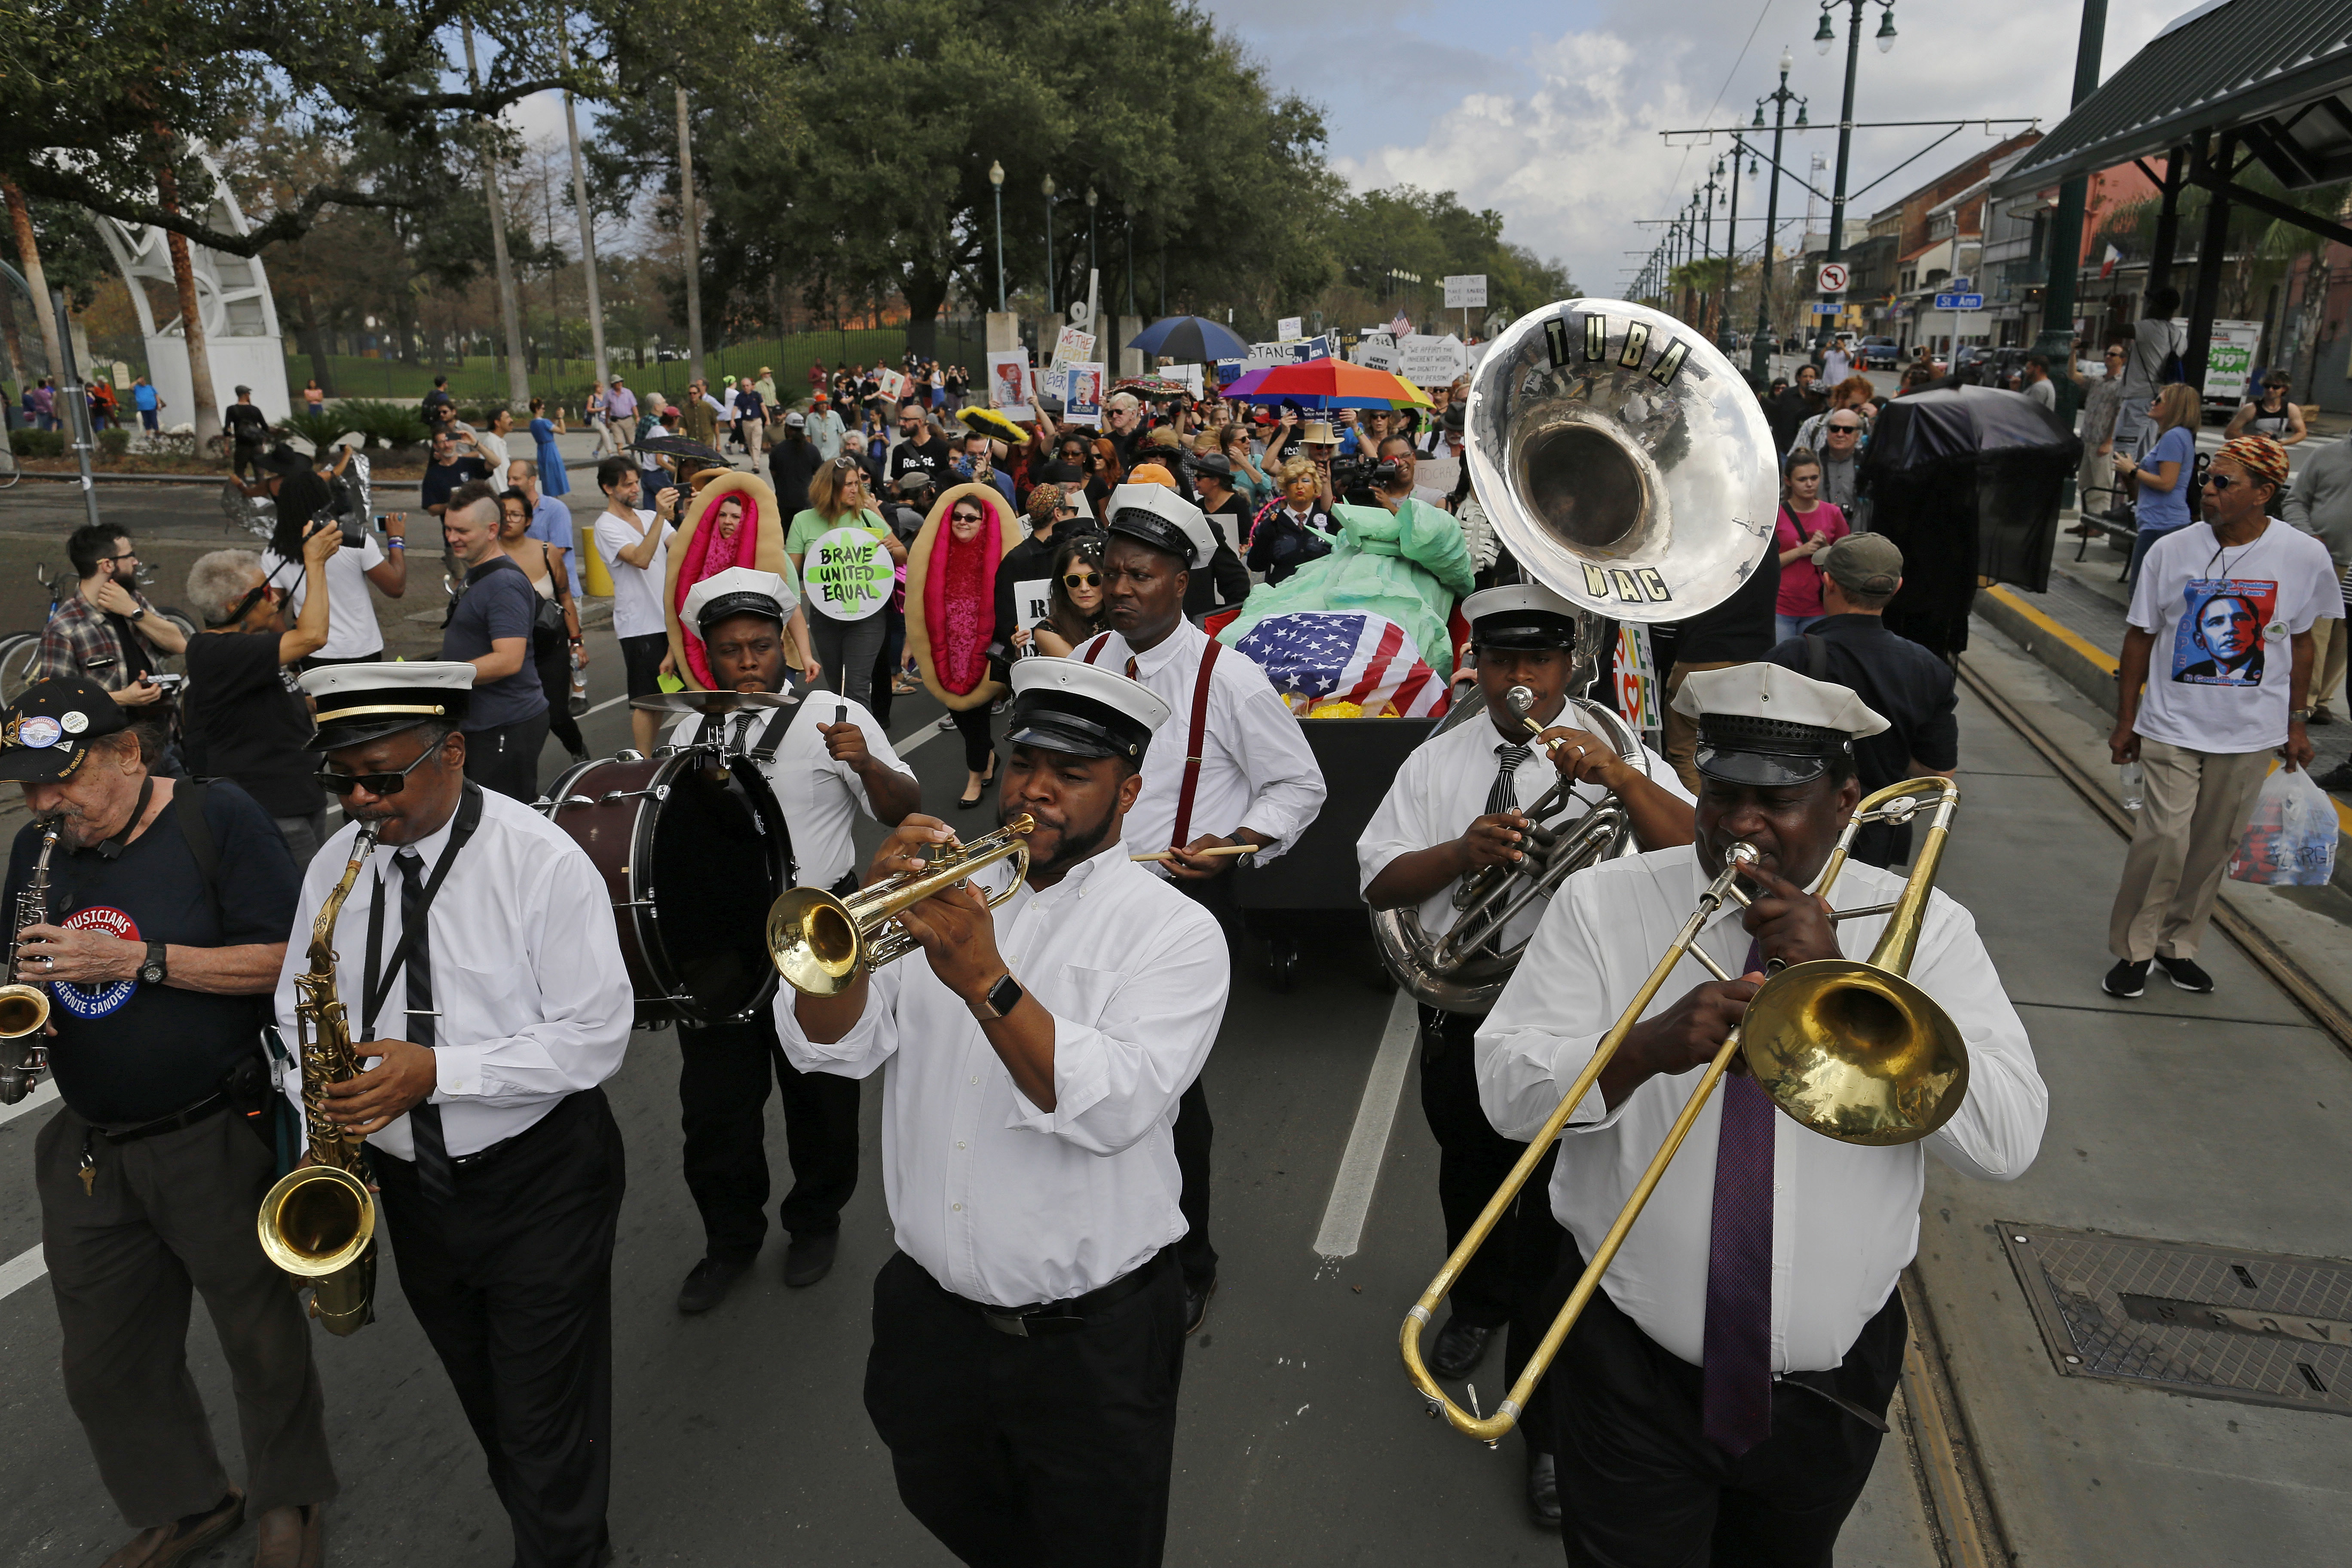 Members of the Mahogany Brass Band lead a mock second line jazz funeral procession down the streets of New Orleans in protest of the inauguration of Donald Trump Friday, Jan. 20, 2017. (AP Photo/Max Becherer)